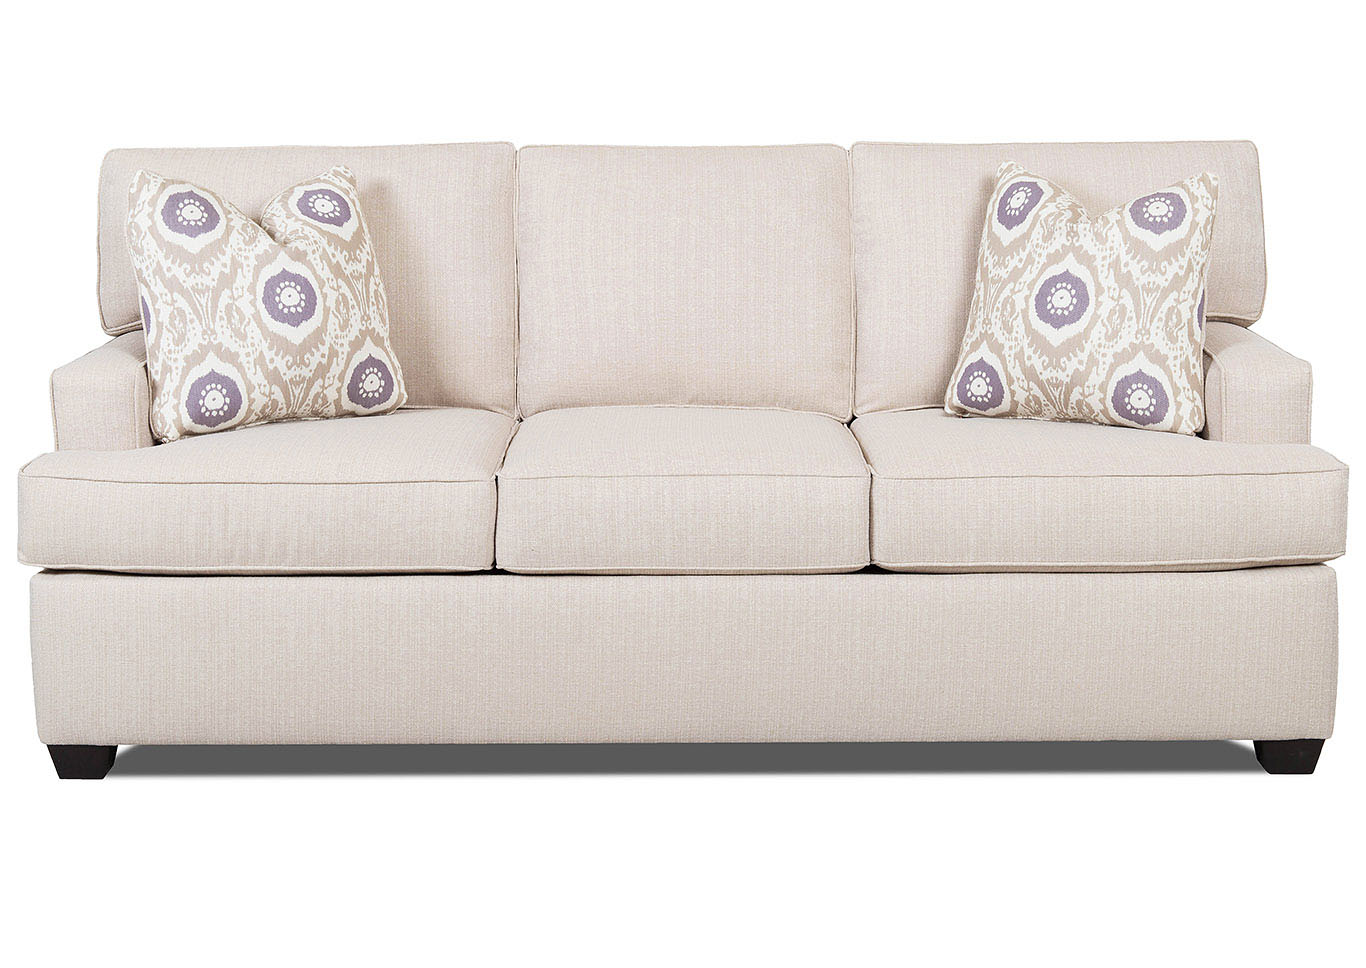 Cruze Flax Stationary Fabric Sofa,Klaussner Home Furnishings